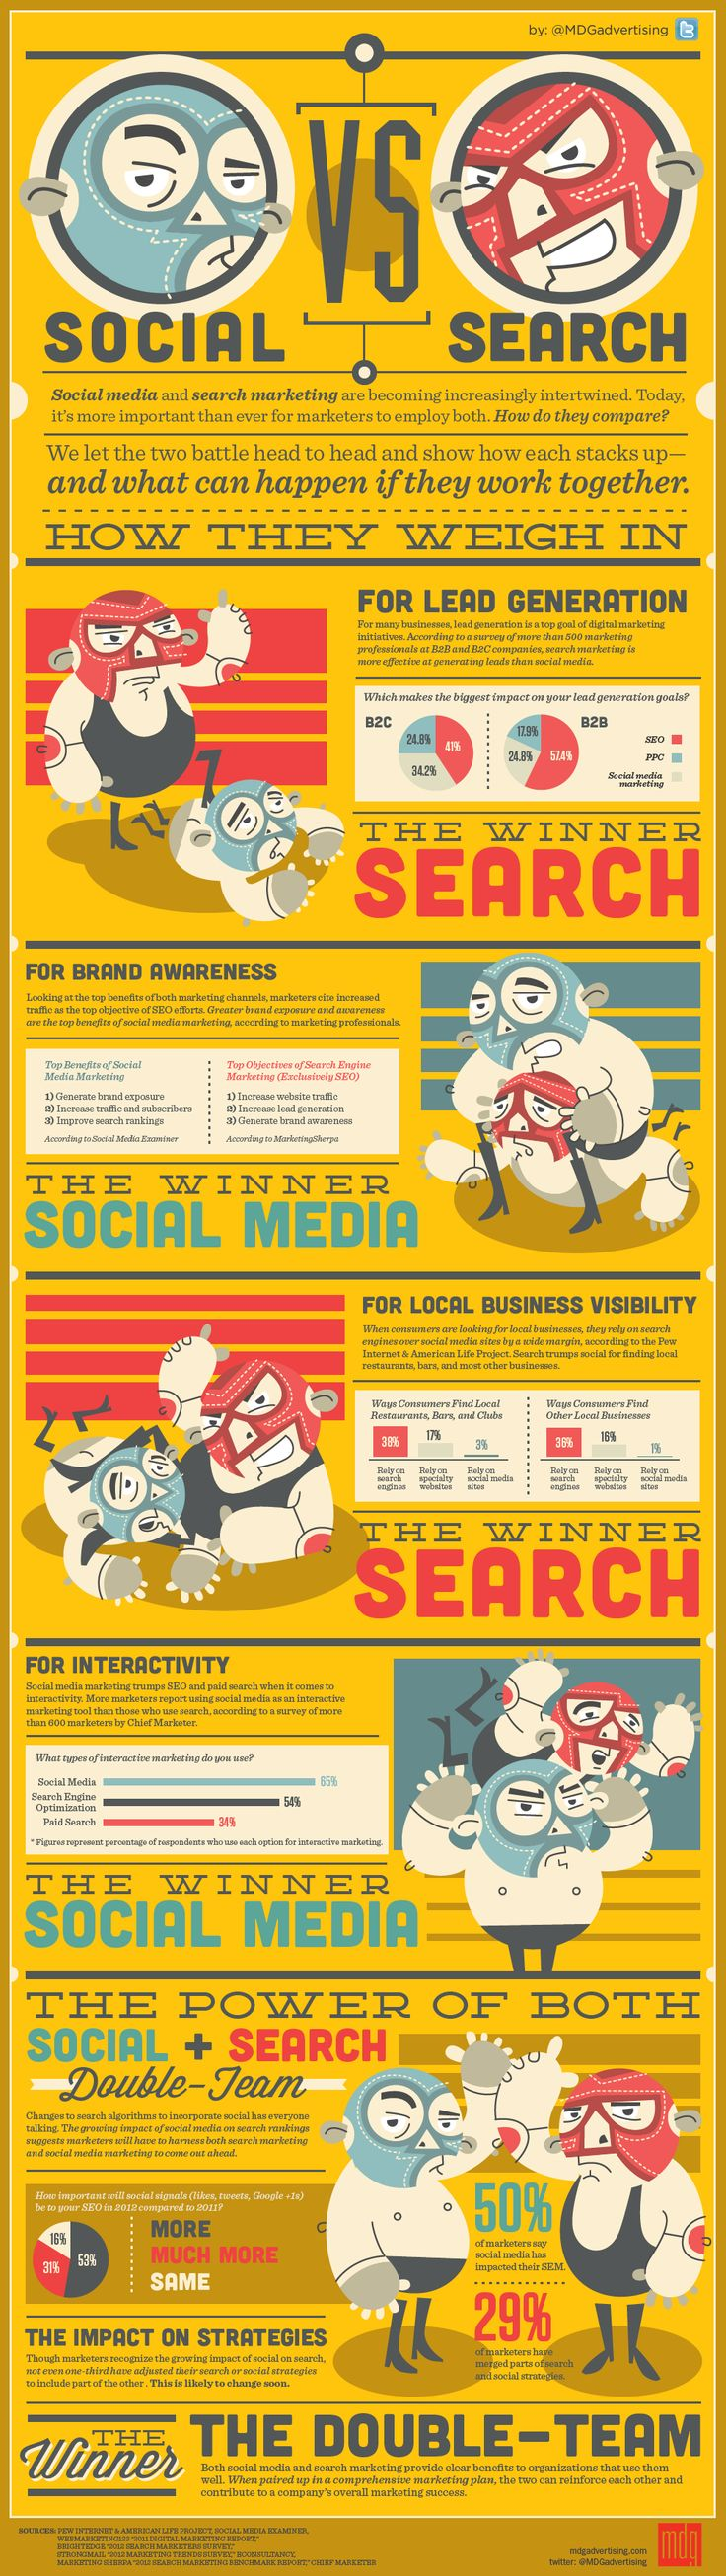 #Comparison #DoubleTeam #SocialMedia  #Search.